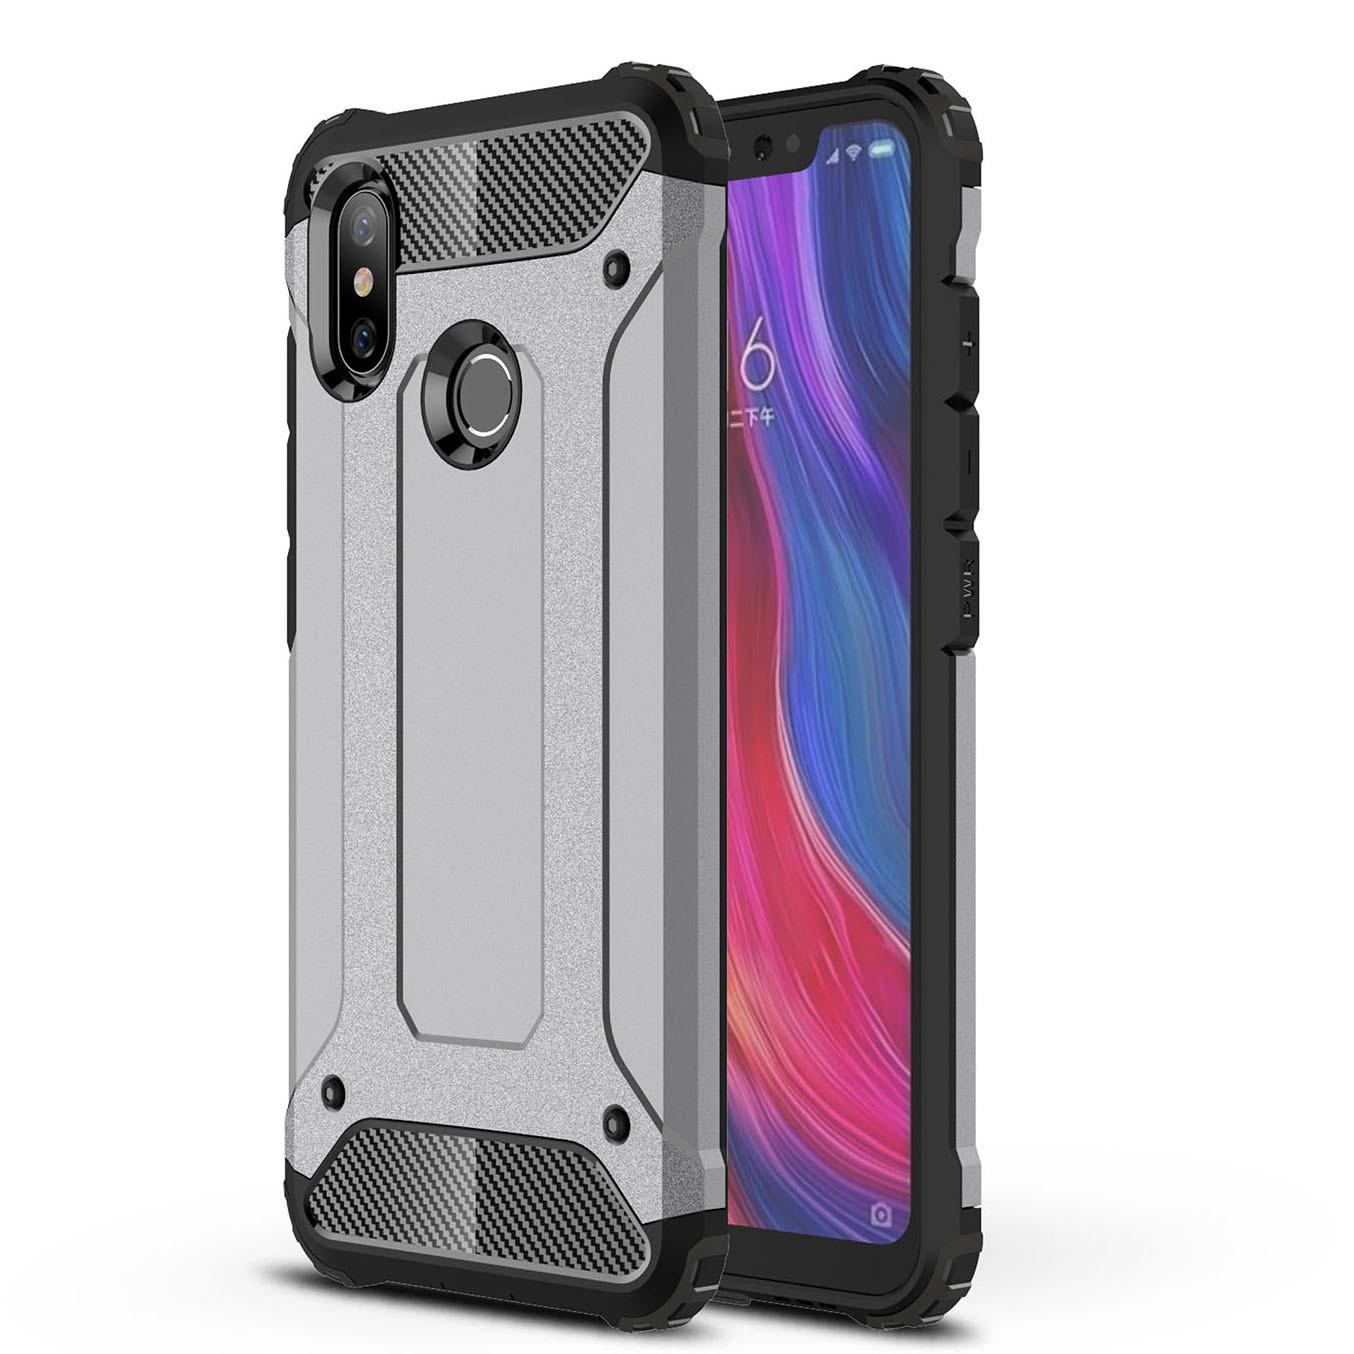 VND 90.000. Lenuo TPU + Hard Plastic Case for Xiaomi Mi 8 Hybrid Shell Armor Rugged Anti-knock Shockproof Cover for Xiaomi Mi8VND90000